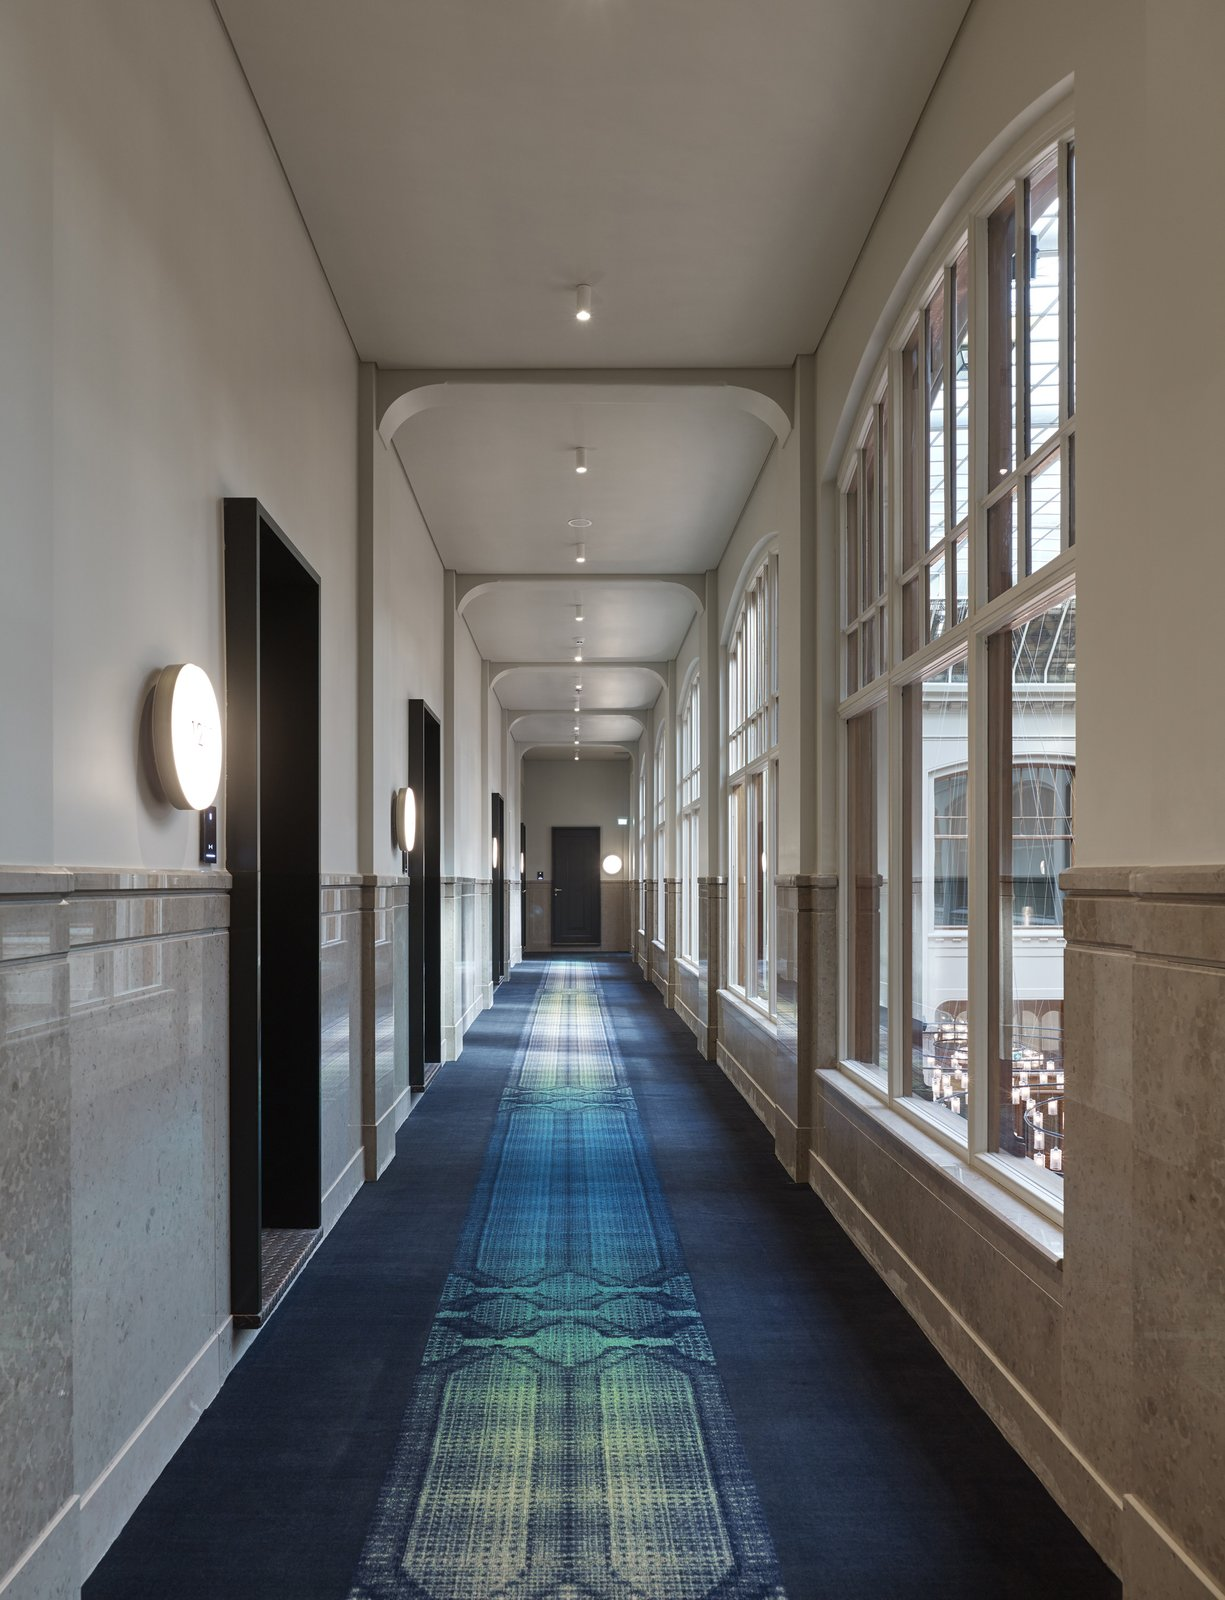 A long view down the corridor of the second floor. Formerly a Historic Bank, This Amsterdam Hotel Honors its Stately Roots - Photo 8 of 14